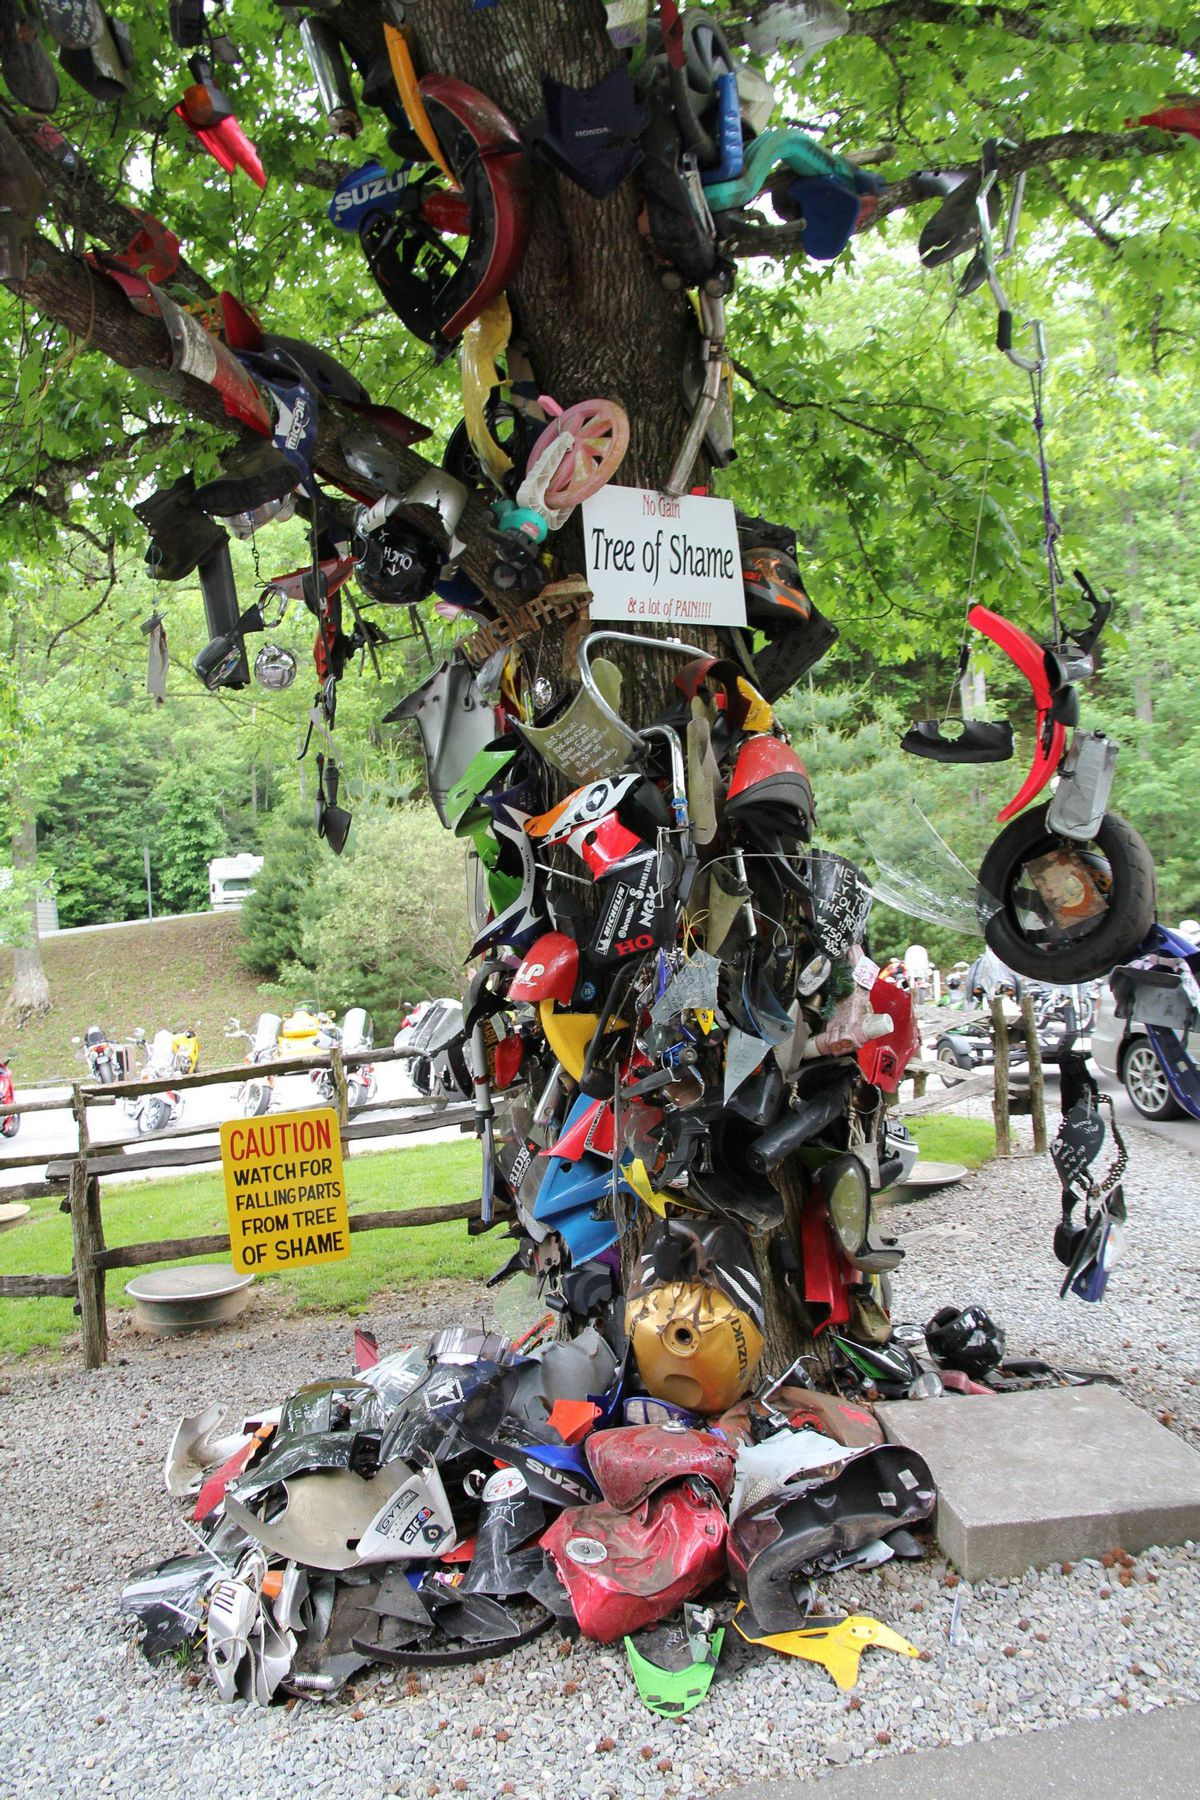 The Tree of Shame at Deals Gap, North Carolina. Riders who crash on the famous road known as The Tail of the Dragon commemorate their mishap by hanging wreckage on the tree. Many sign the shattered parts.